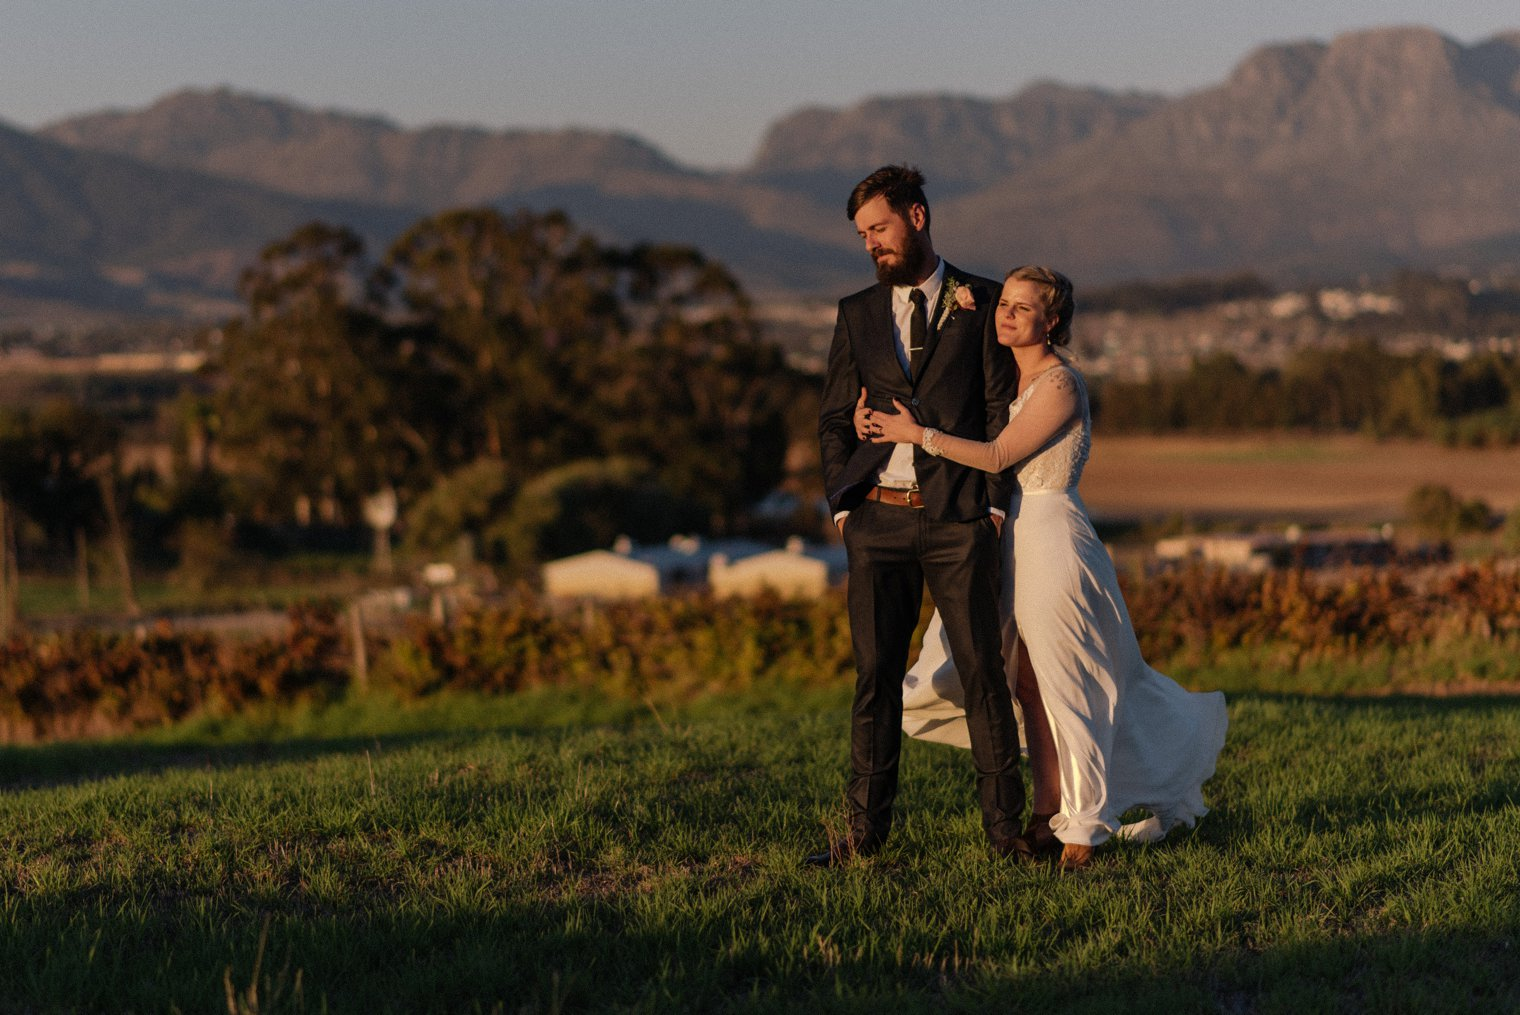 sunset wedding photos at kronenburg in stellenbosch